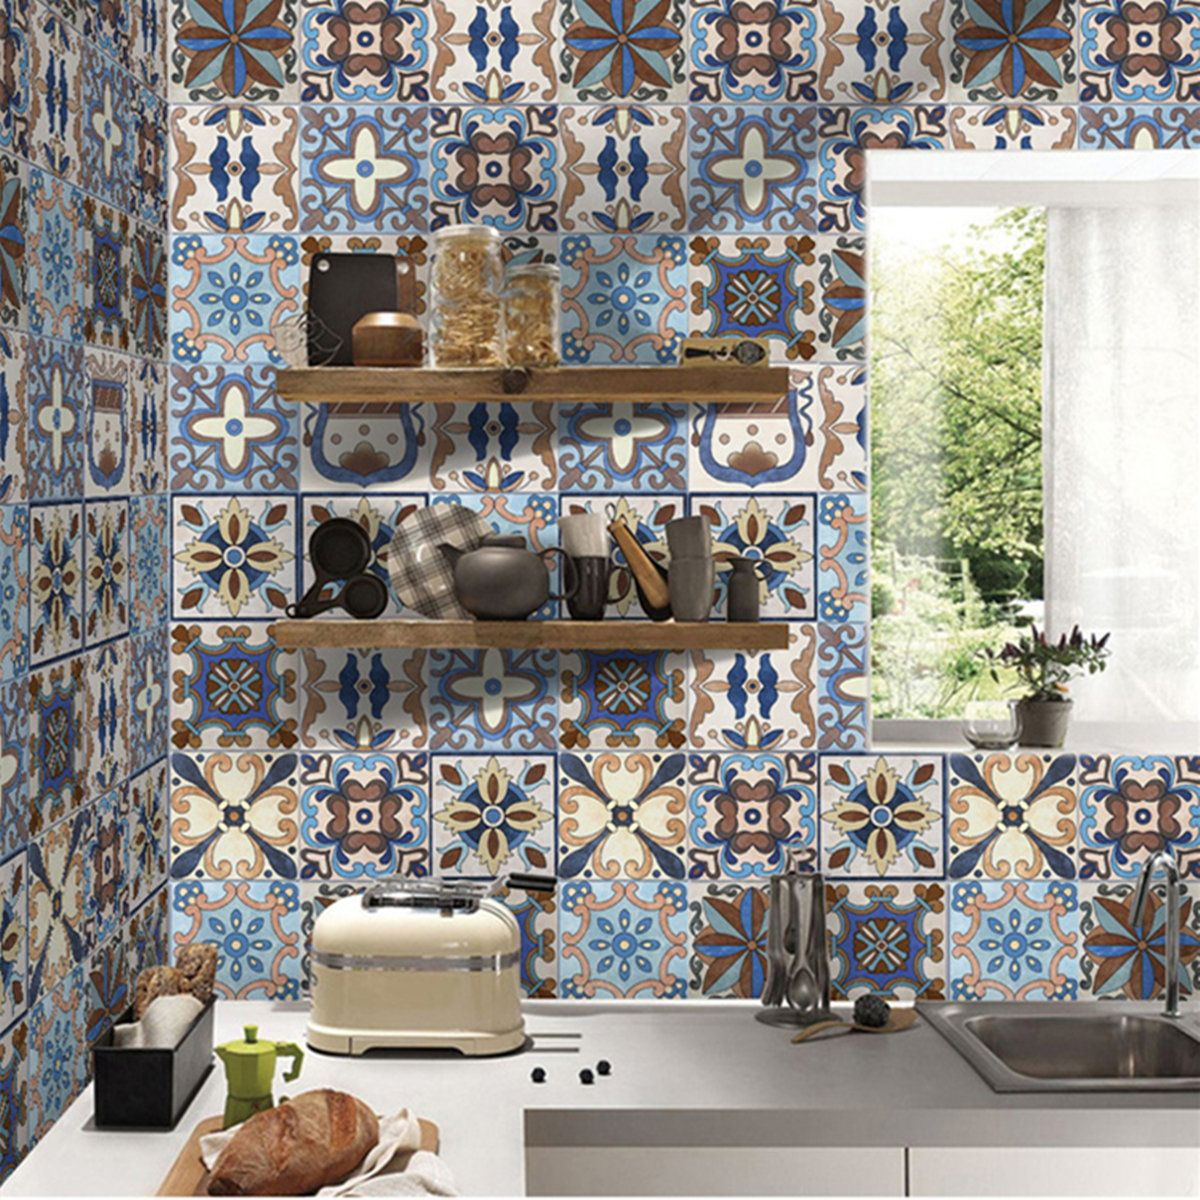 Bathroom Wall Stickers Pvc Mosaic Wallpaper Kitchen Waterproof Tile Stickers Plastic Vinyl Self Adhesive Wall Papers Home Decor In 2020 Bathroom Wall Stickers Kitchen Wallpaper Bathroom Wall Tile